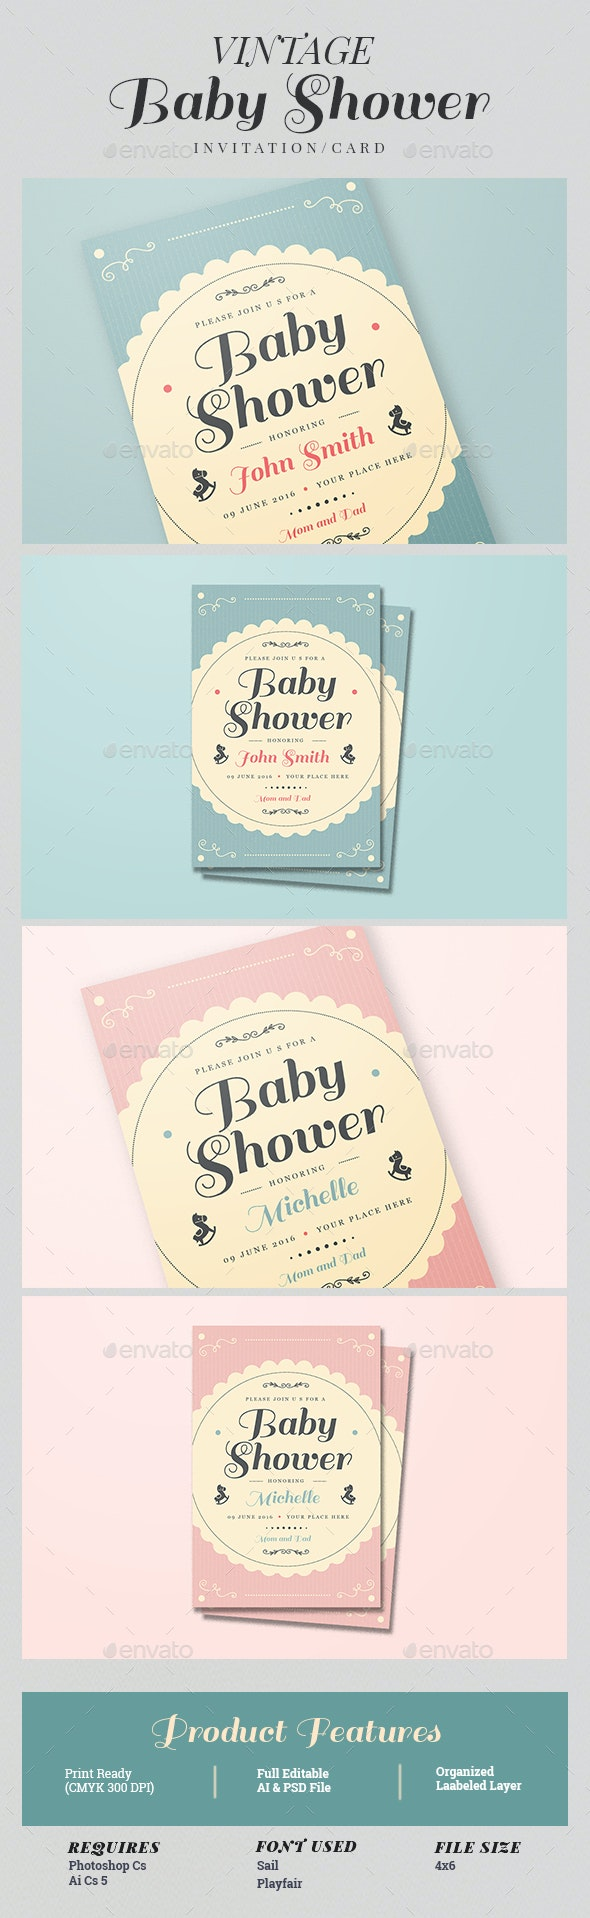 Vintage Baby Shower Invitation/Card - Cards & Invites Print Templates